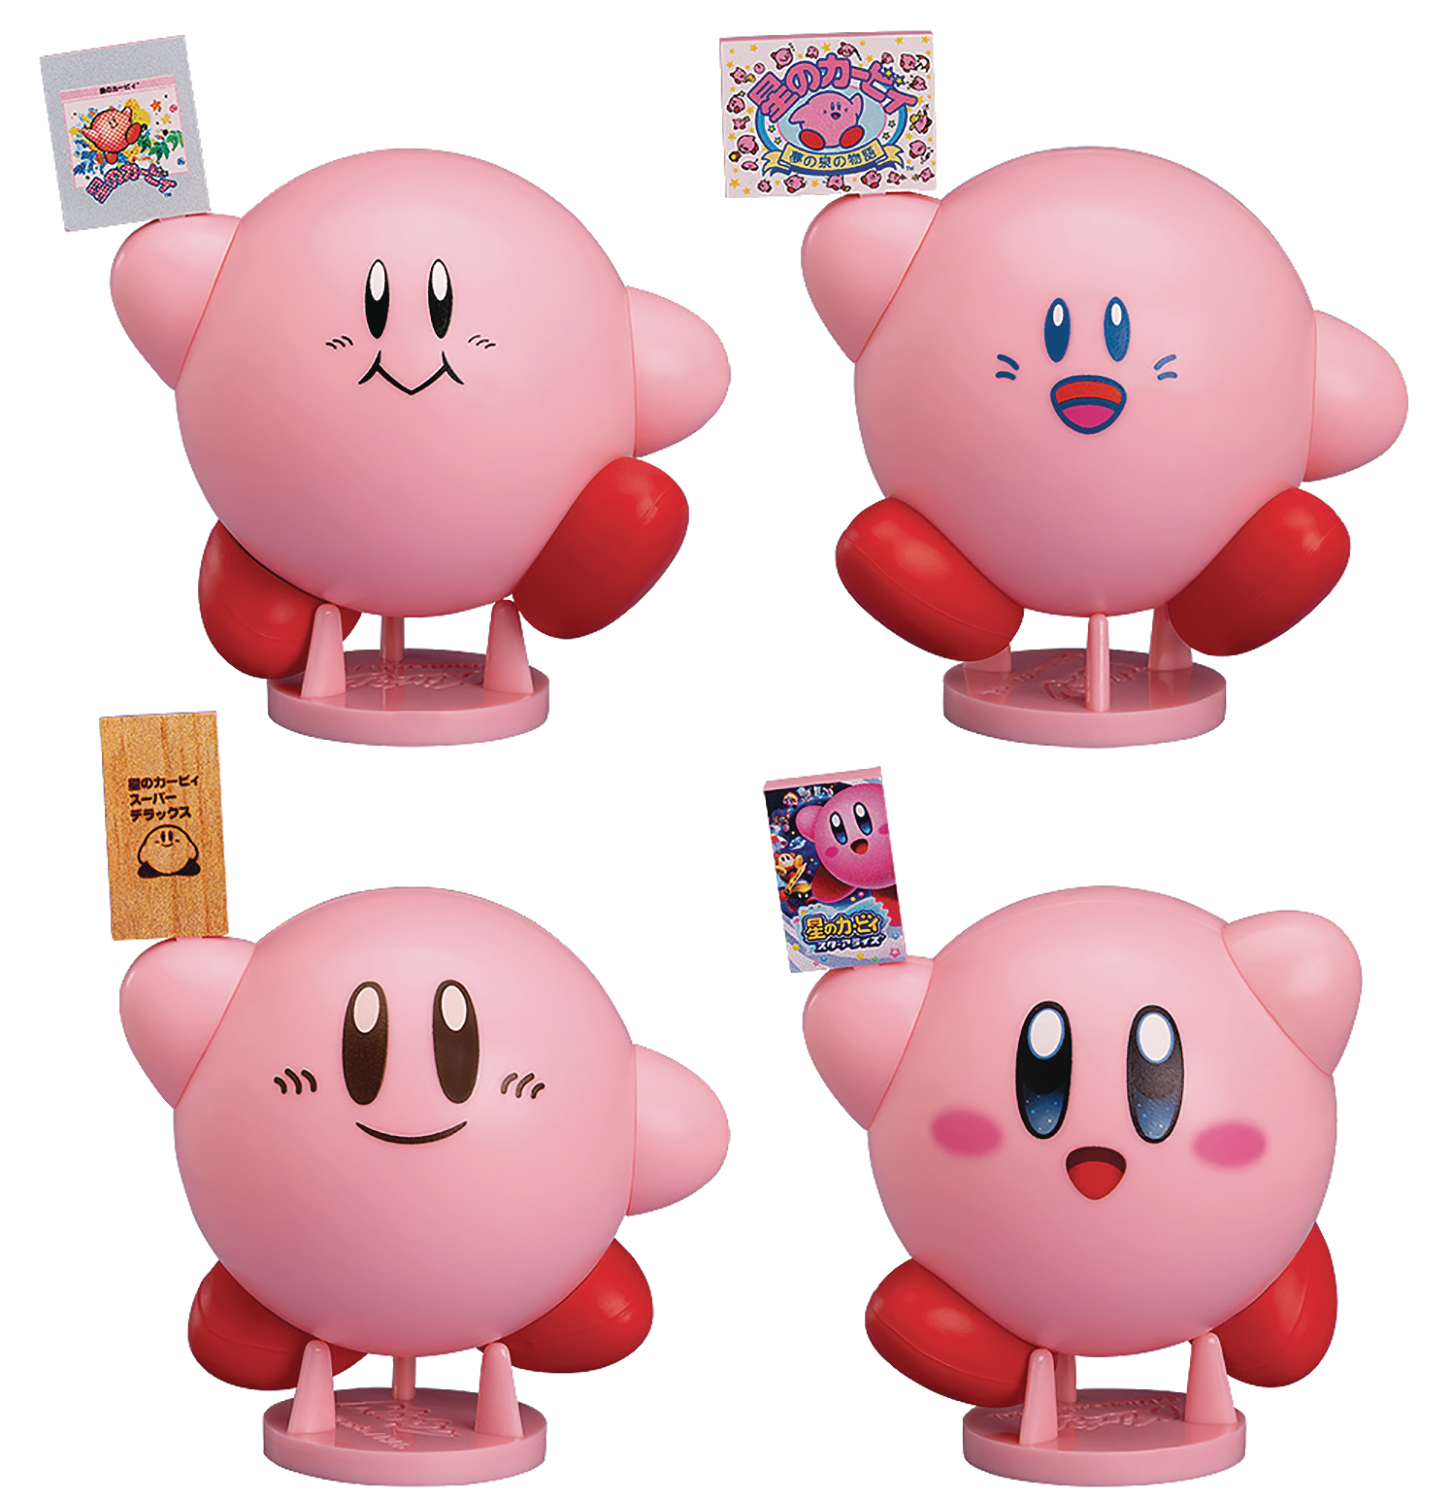 COROCOROID KIRBY 02 COLLECTIBLE FIGURE 6PC BMB DS